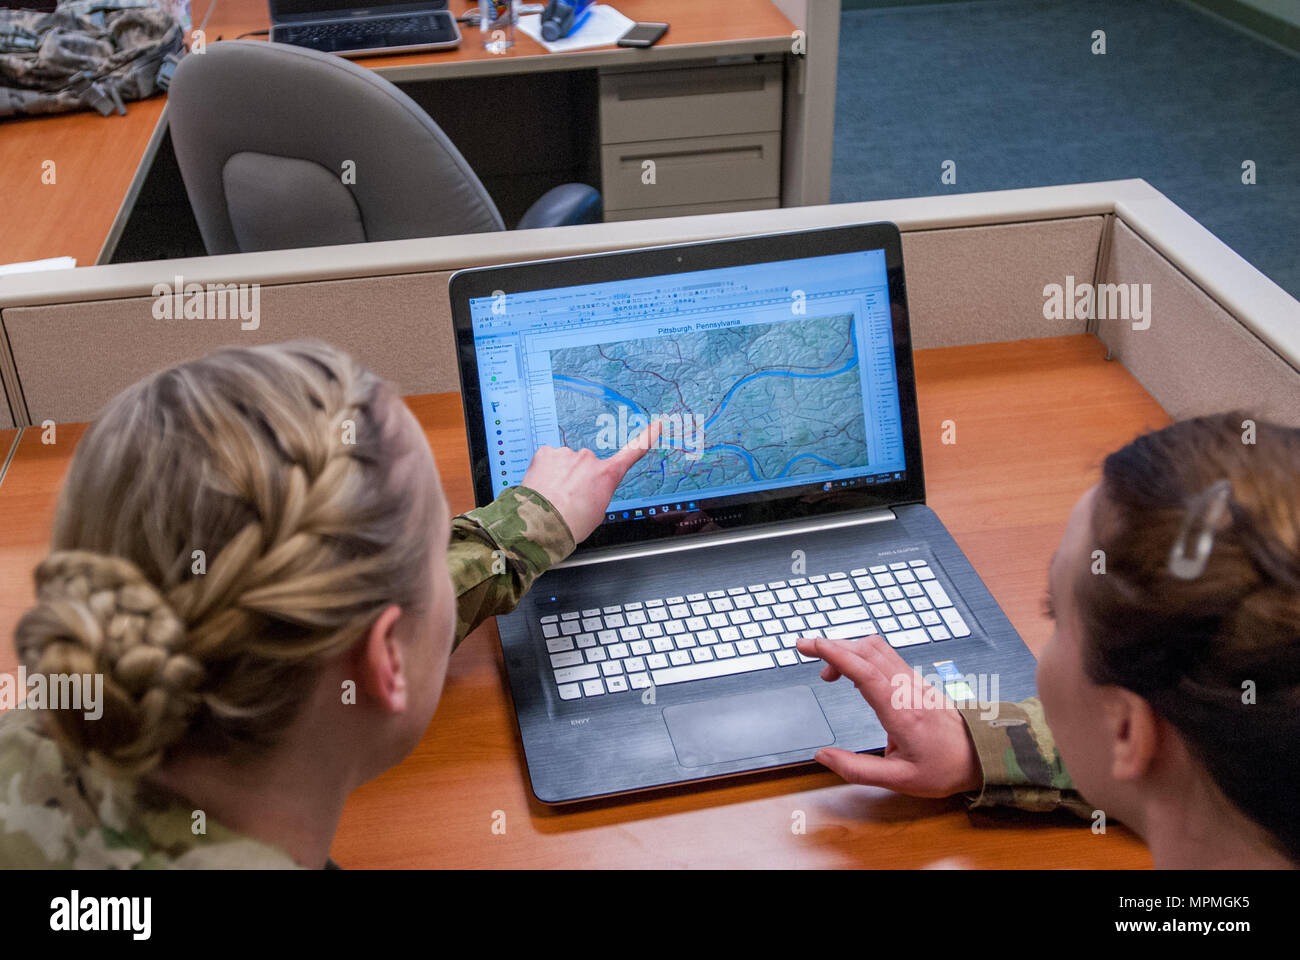 Sgt. Morgan T. Wilken identifies a location in ArcMap at the 301st Maneuver Enhancement Brigade headquarters, Joint Base Lewis-McChord, Washington, Feburary 12, 2017. Geospatial engineers produce the maps that will support the commander's next mission, and are a vital component of the Army, Army Reserve, and Total Force (U.S. Army Reserve photo by Spc. Sean Harding/Released). - Stock Image